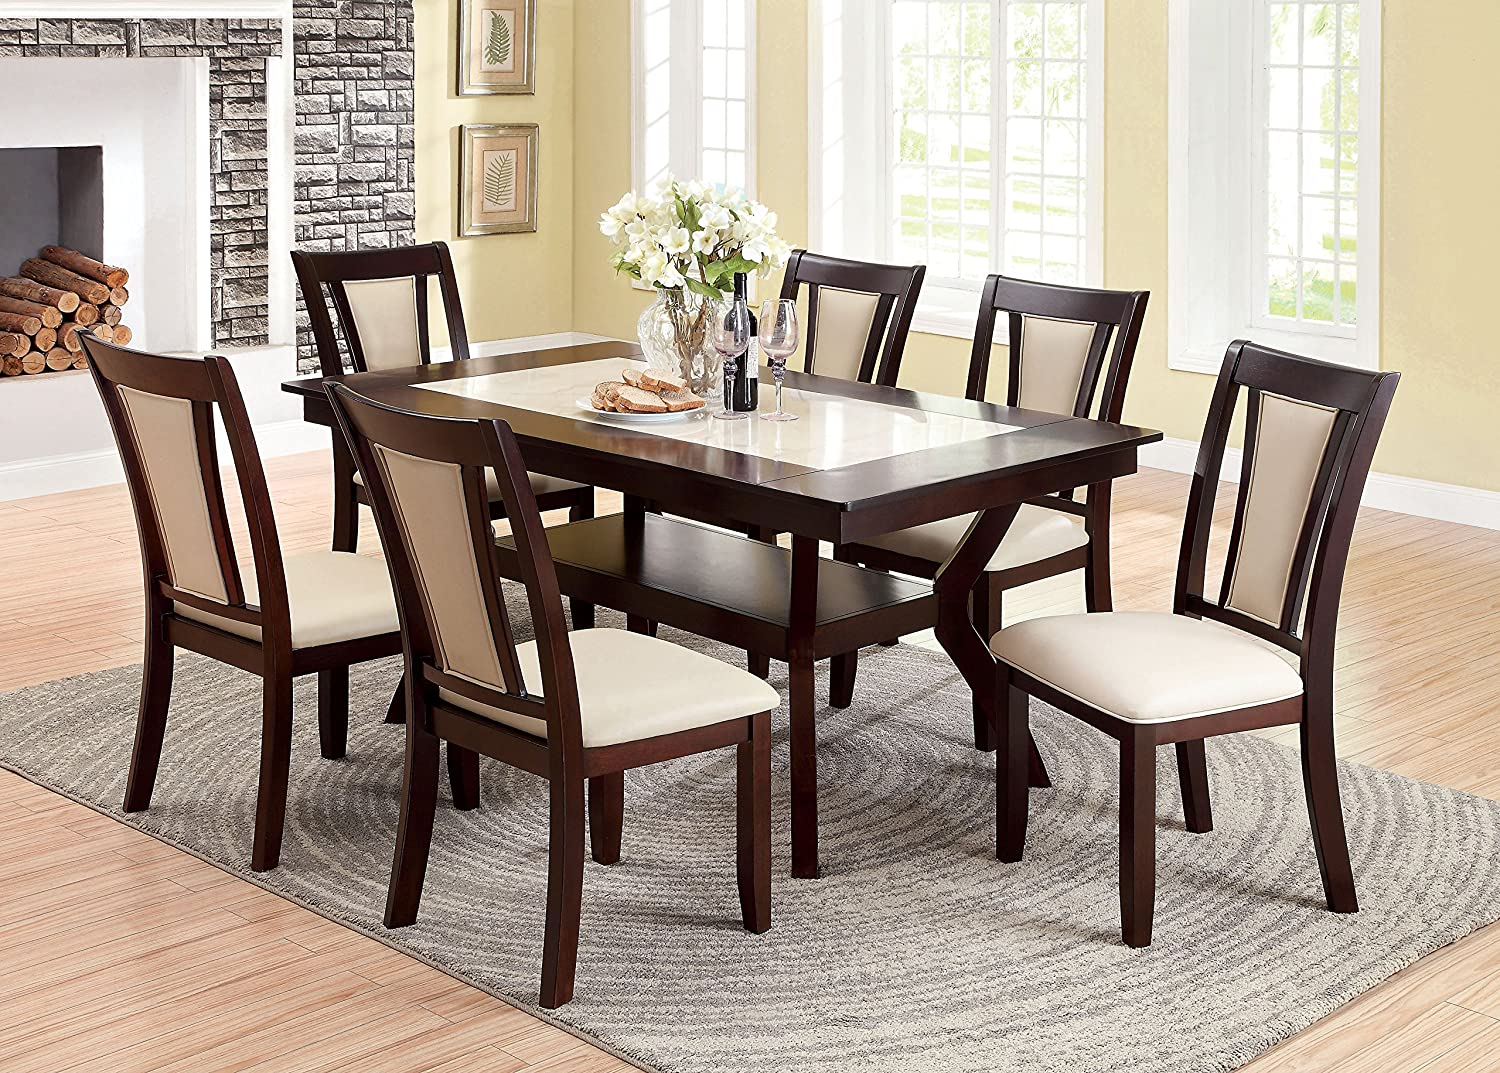 Furniture of America Dalcroze 7-Piece Modern Faux Marble Top Dining Set,  Dark Cherry